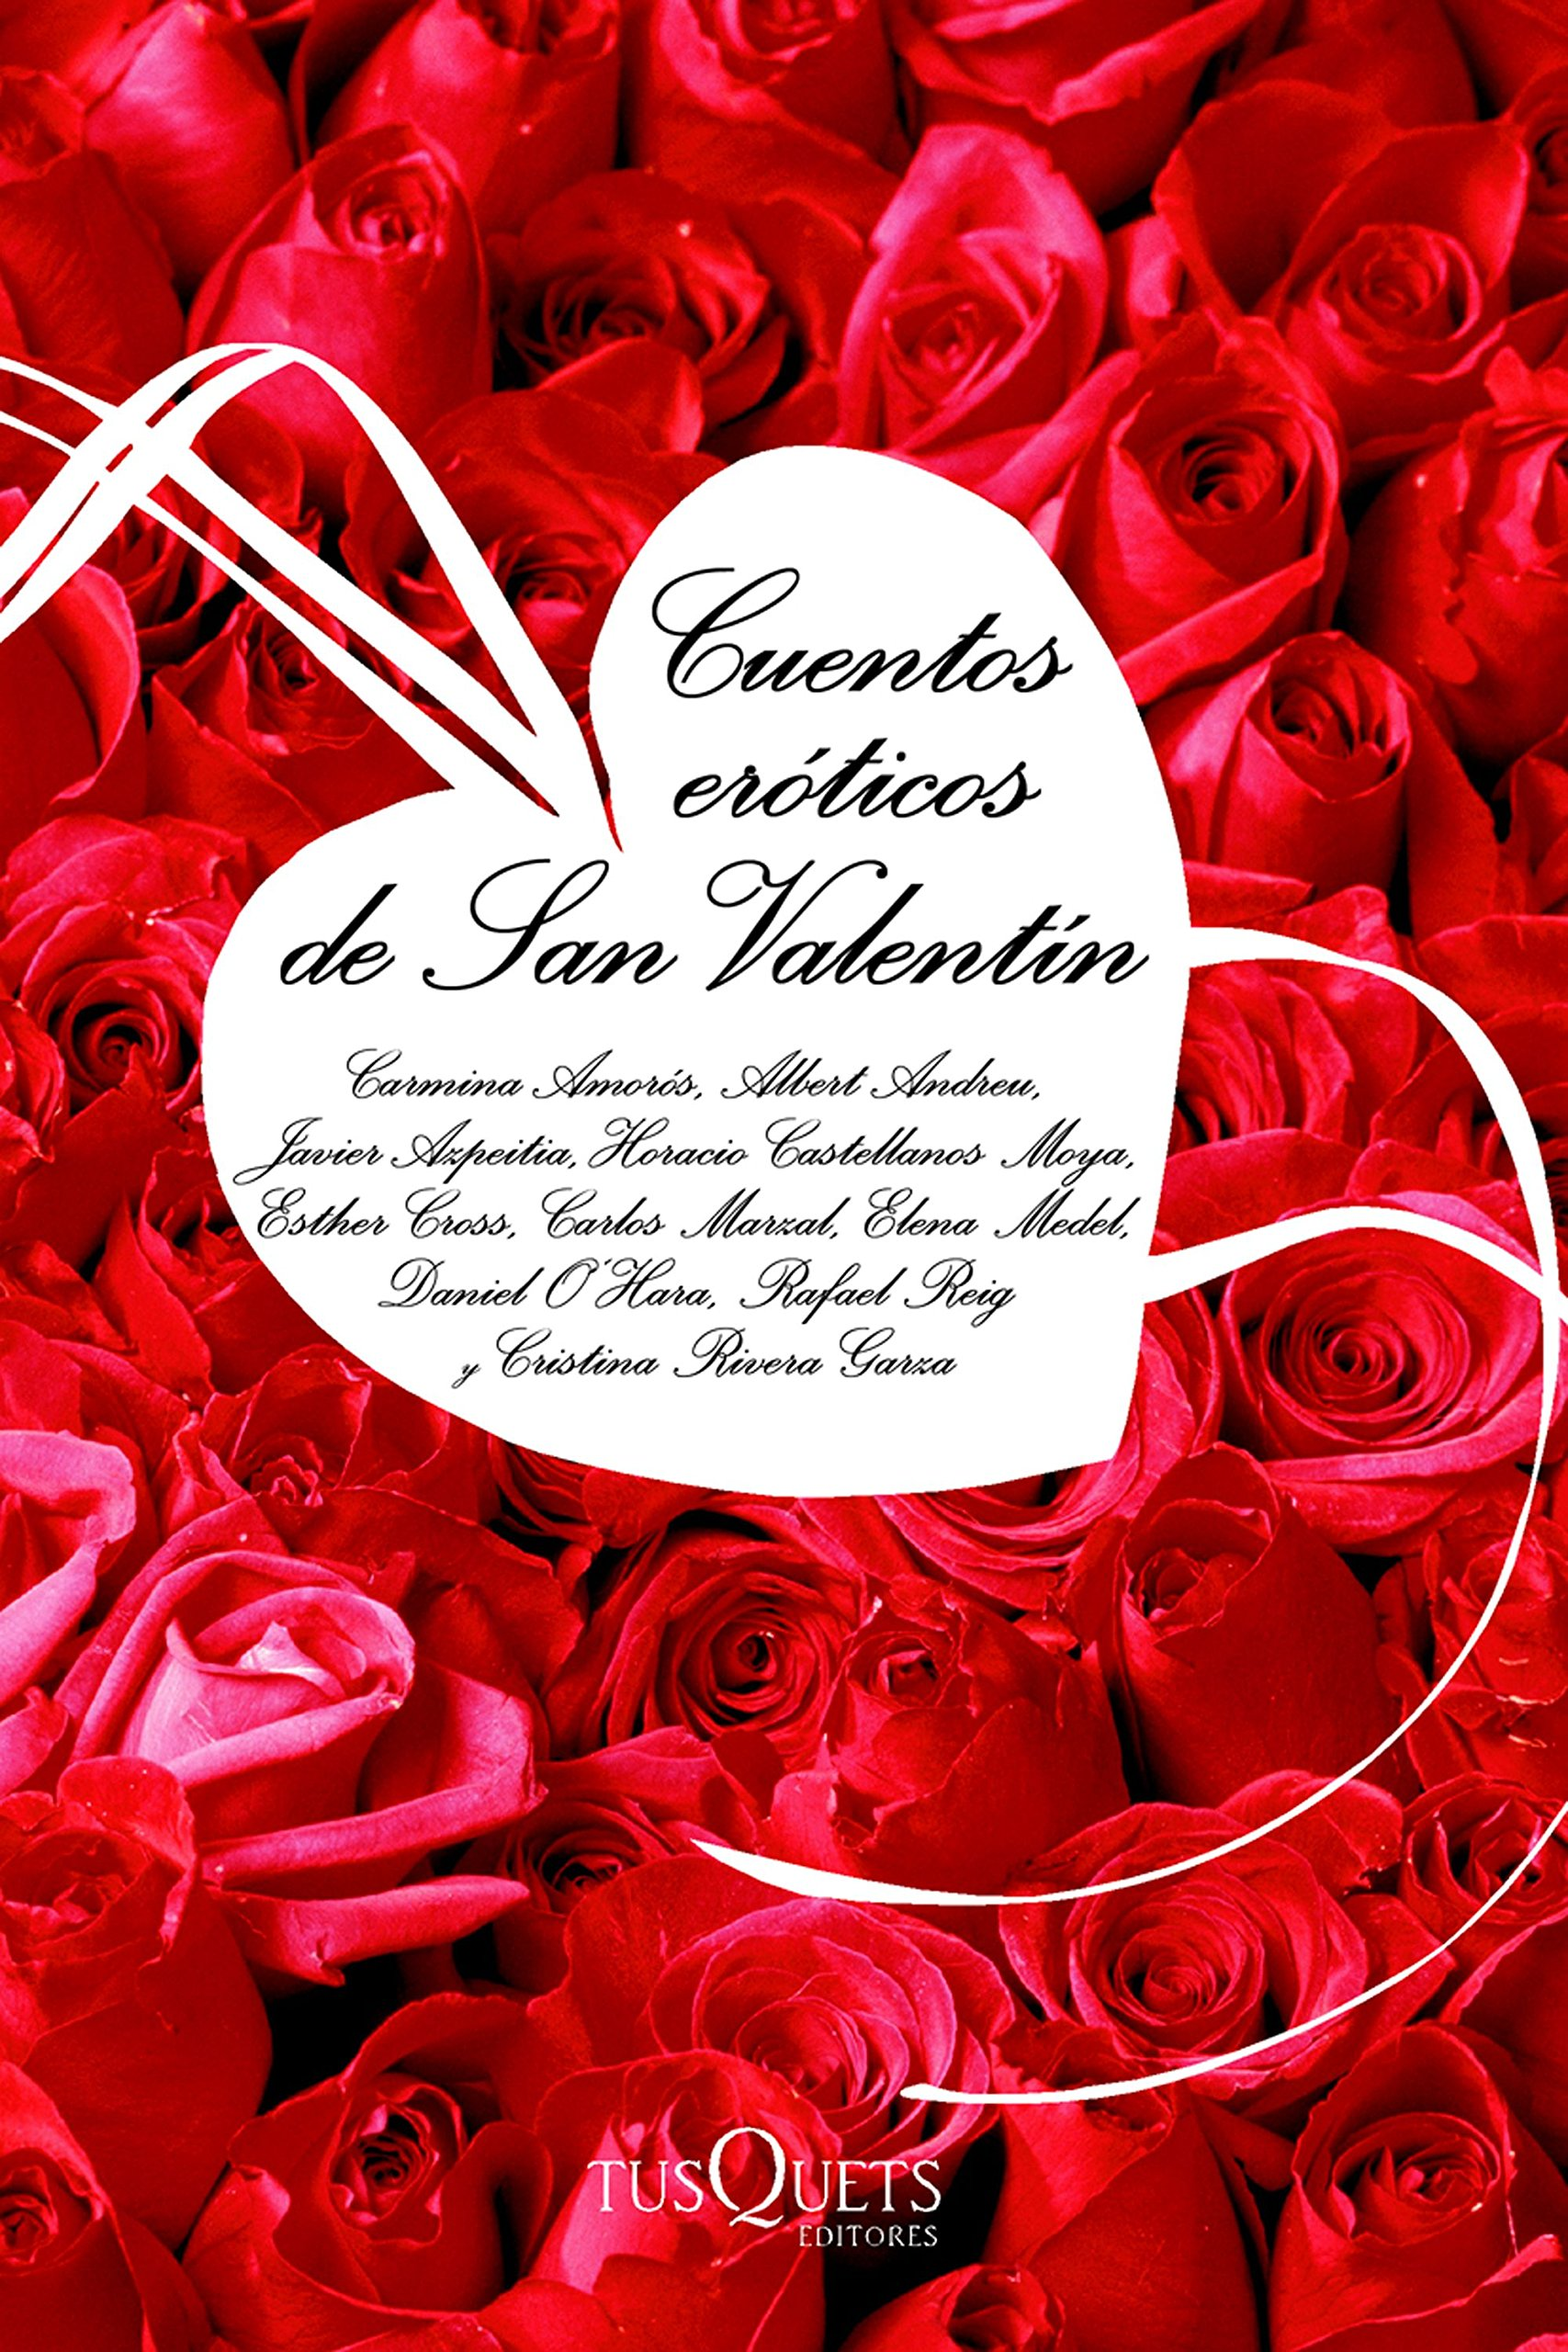 Amazon In Buy Cuentos Eroticos De San Valentin Book Online At Low Prices In India Cuentos Eroticos De San Valentin Reviews Ratings Get the best pricing, availability in our wine catalogue. amazon in